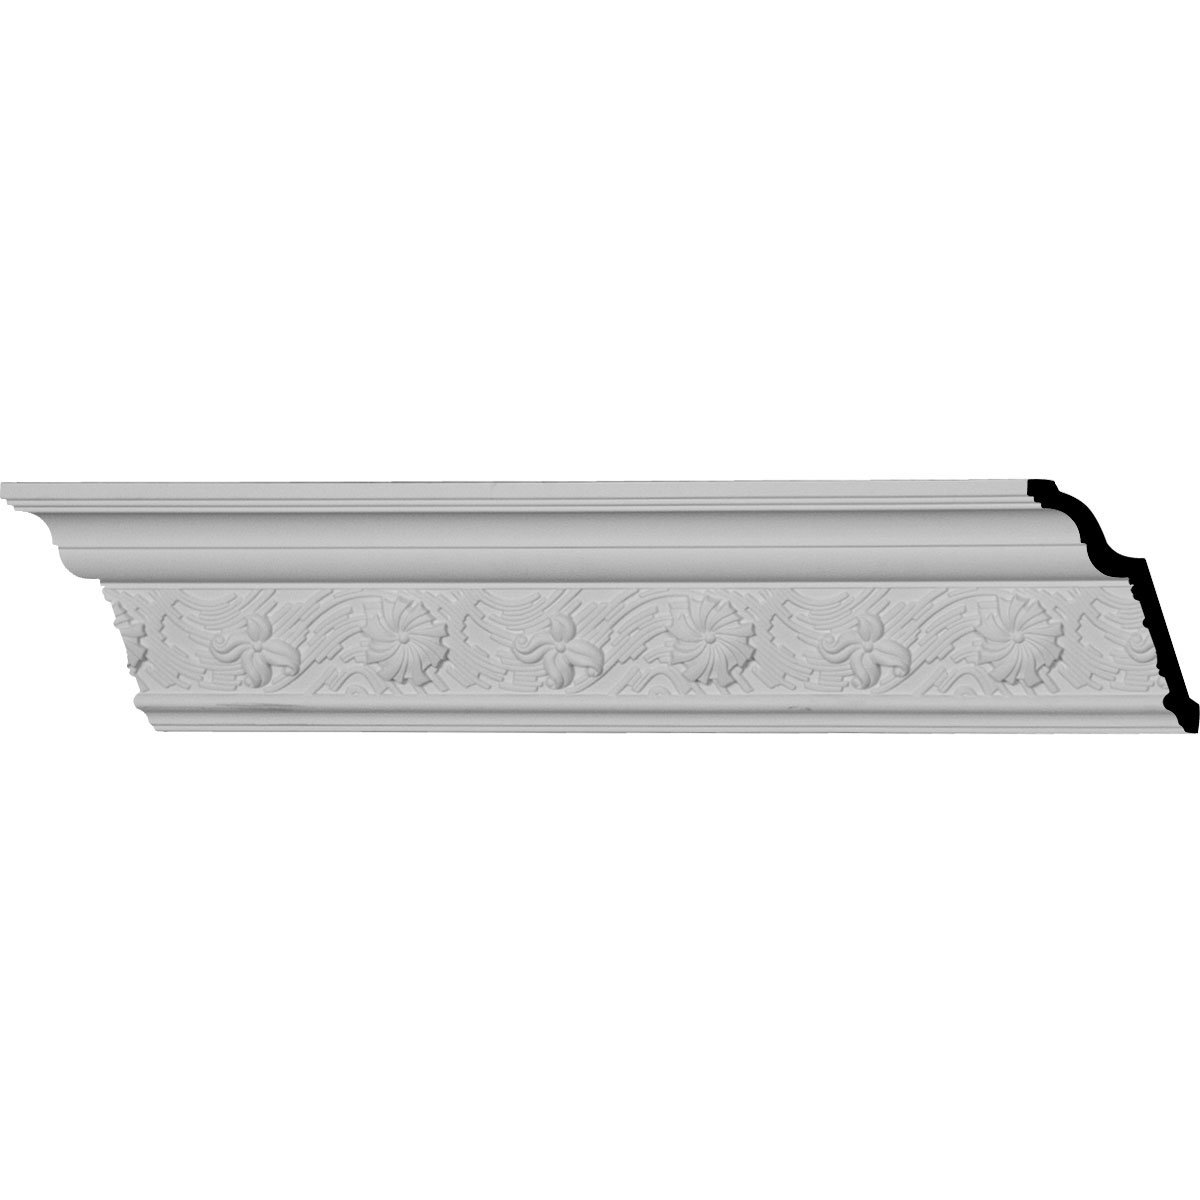 5 1/8'' H x 3 3/8'' P x 6 1/4'' F x 94 1/2'' L, (6 1/4'' Repeat), Flowing Wind Crown Moulding (2-Pack)